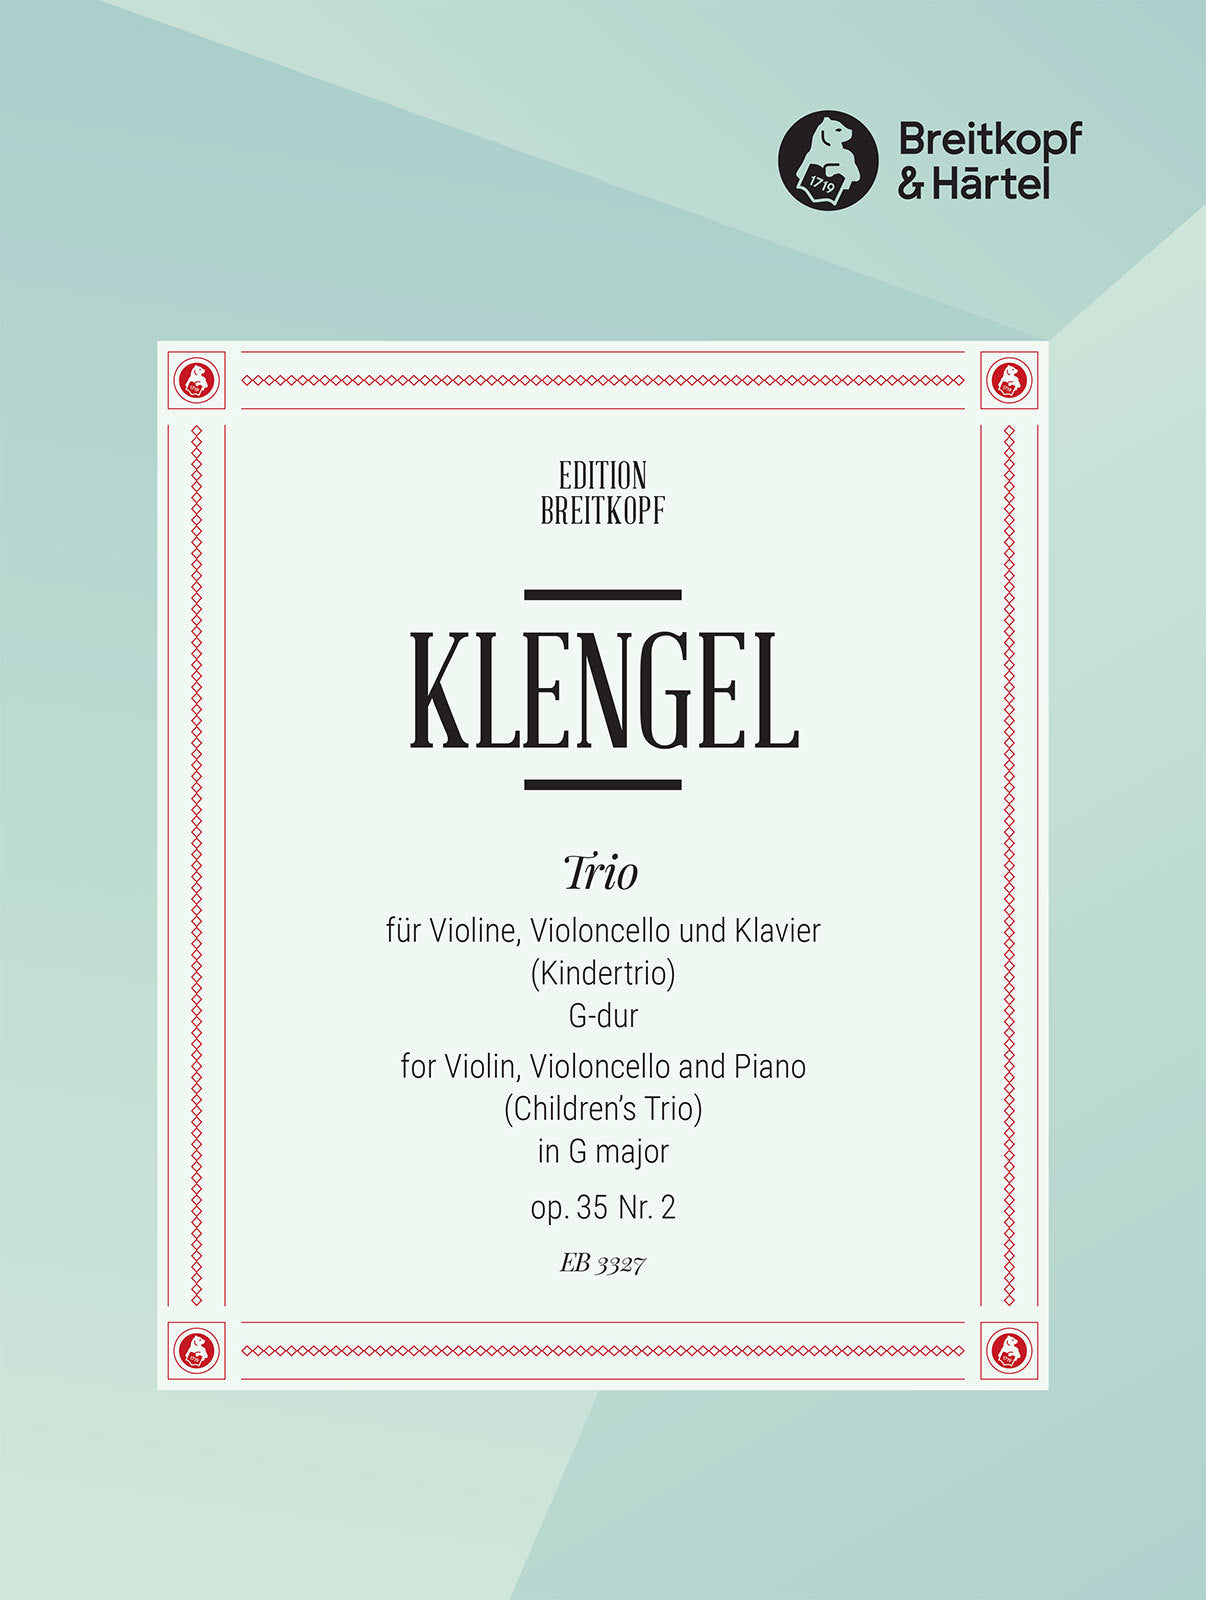 Klengel: Children's Trio in G Major, Op. 35, No. 2